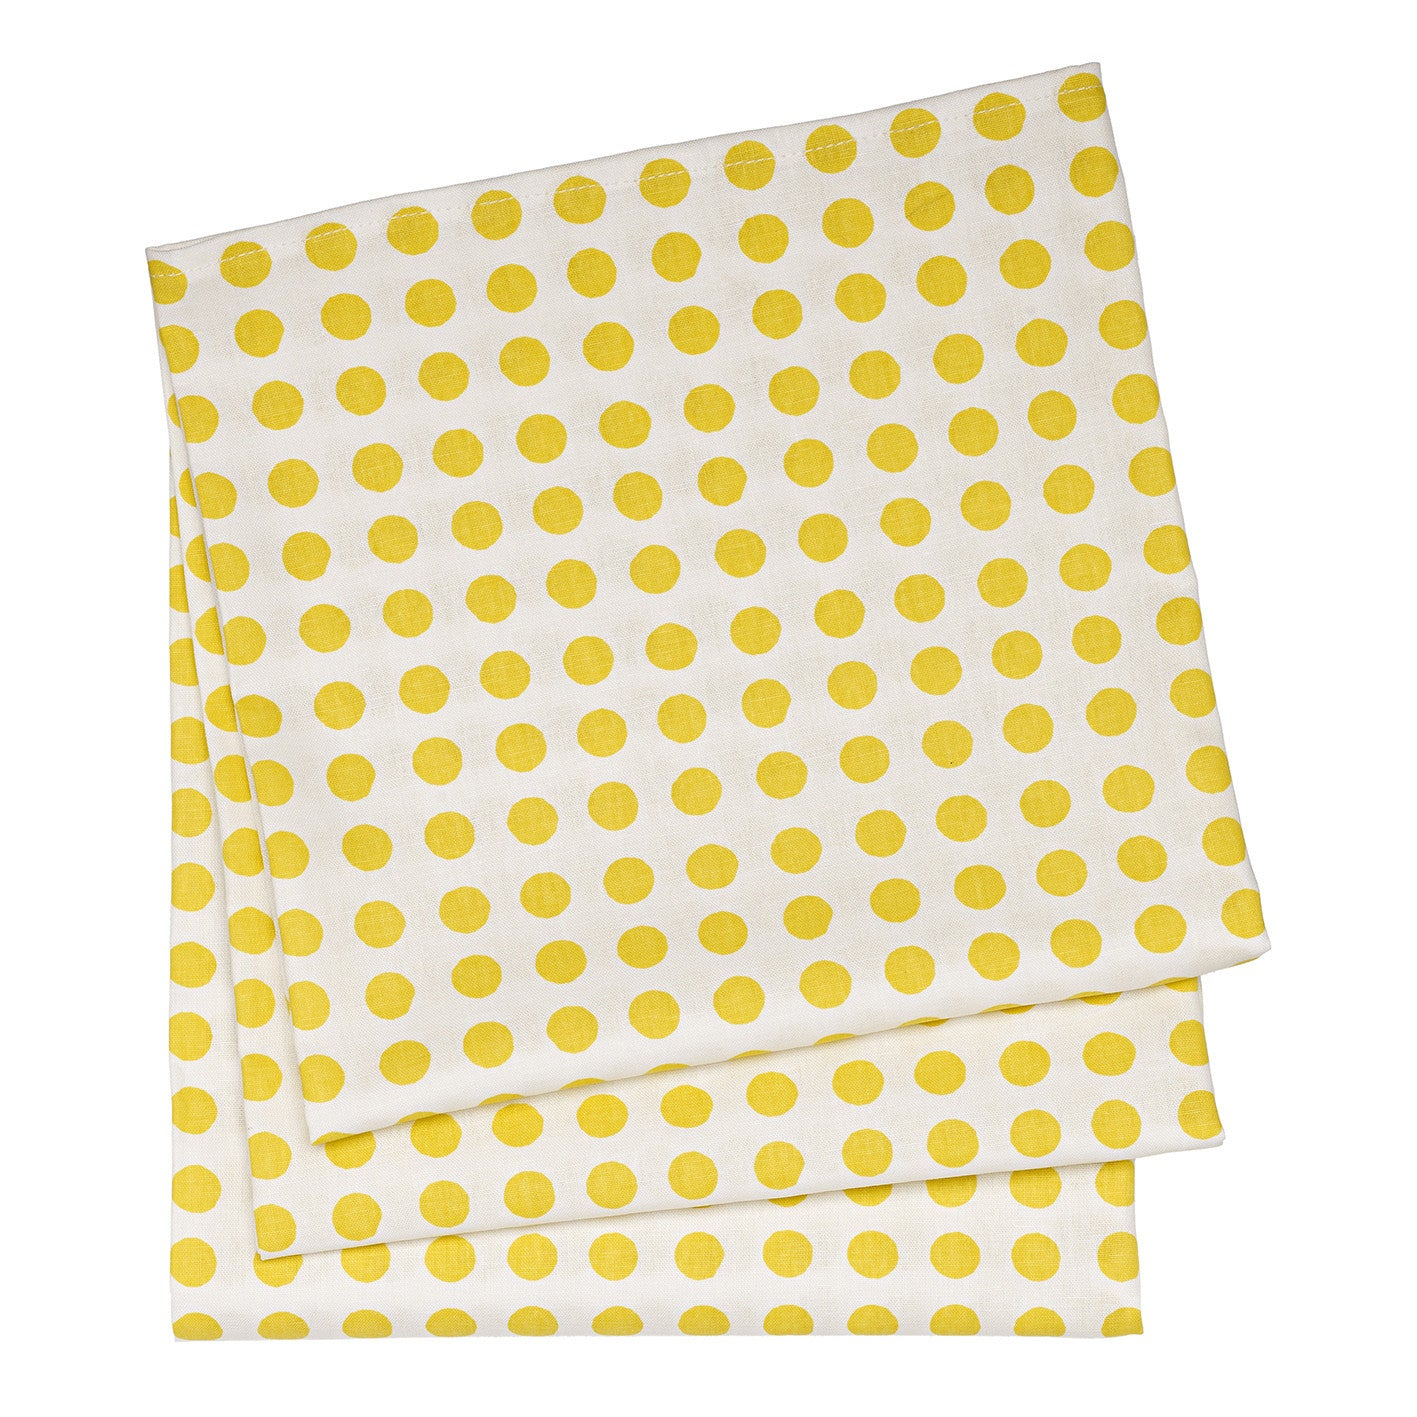 London Polka Dot Cotton Linen Tablecloth in Maize Yellow